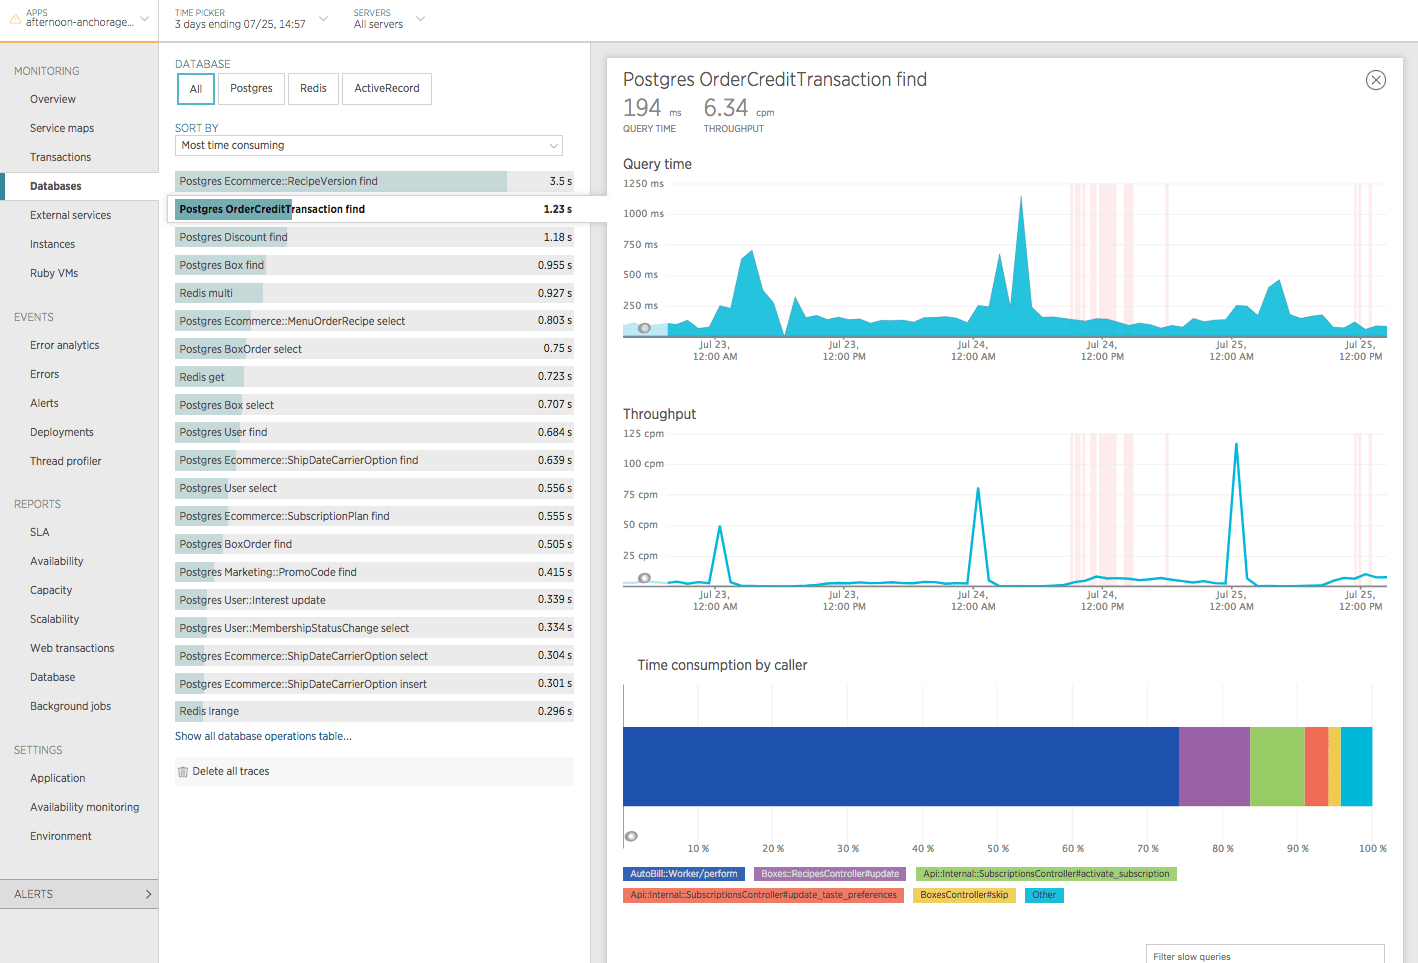 Screenshot from New Relic showing the query time and throughput for the Postgres `OrderCreditTransaction find` operation.